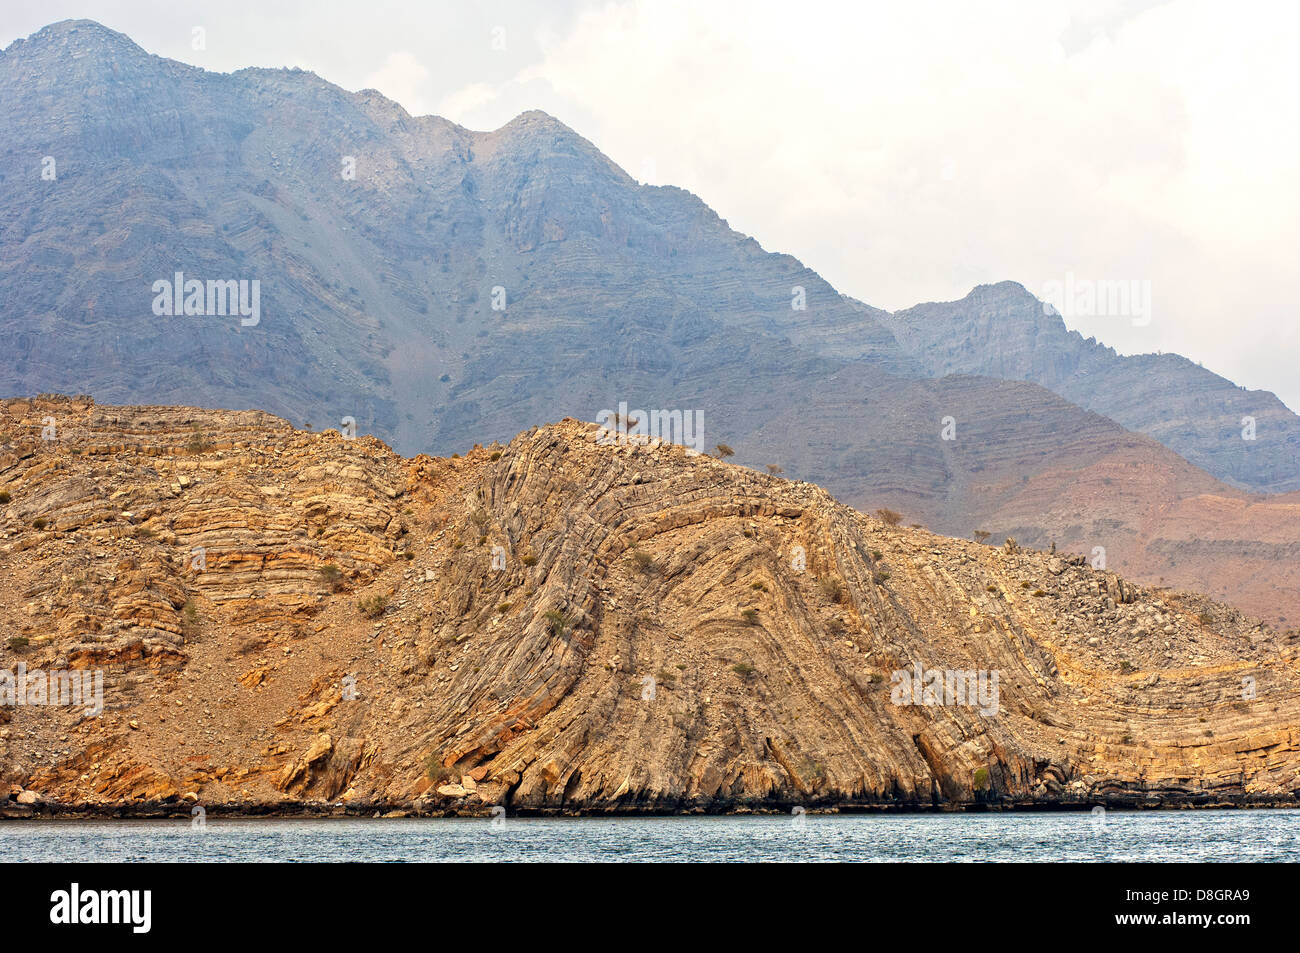 Geological folds in rock faces surrounding the Khor Ash Sham Fjord, Musandam, Sultanate of Oman - Stock Image